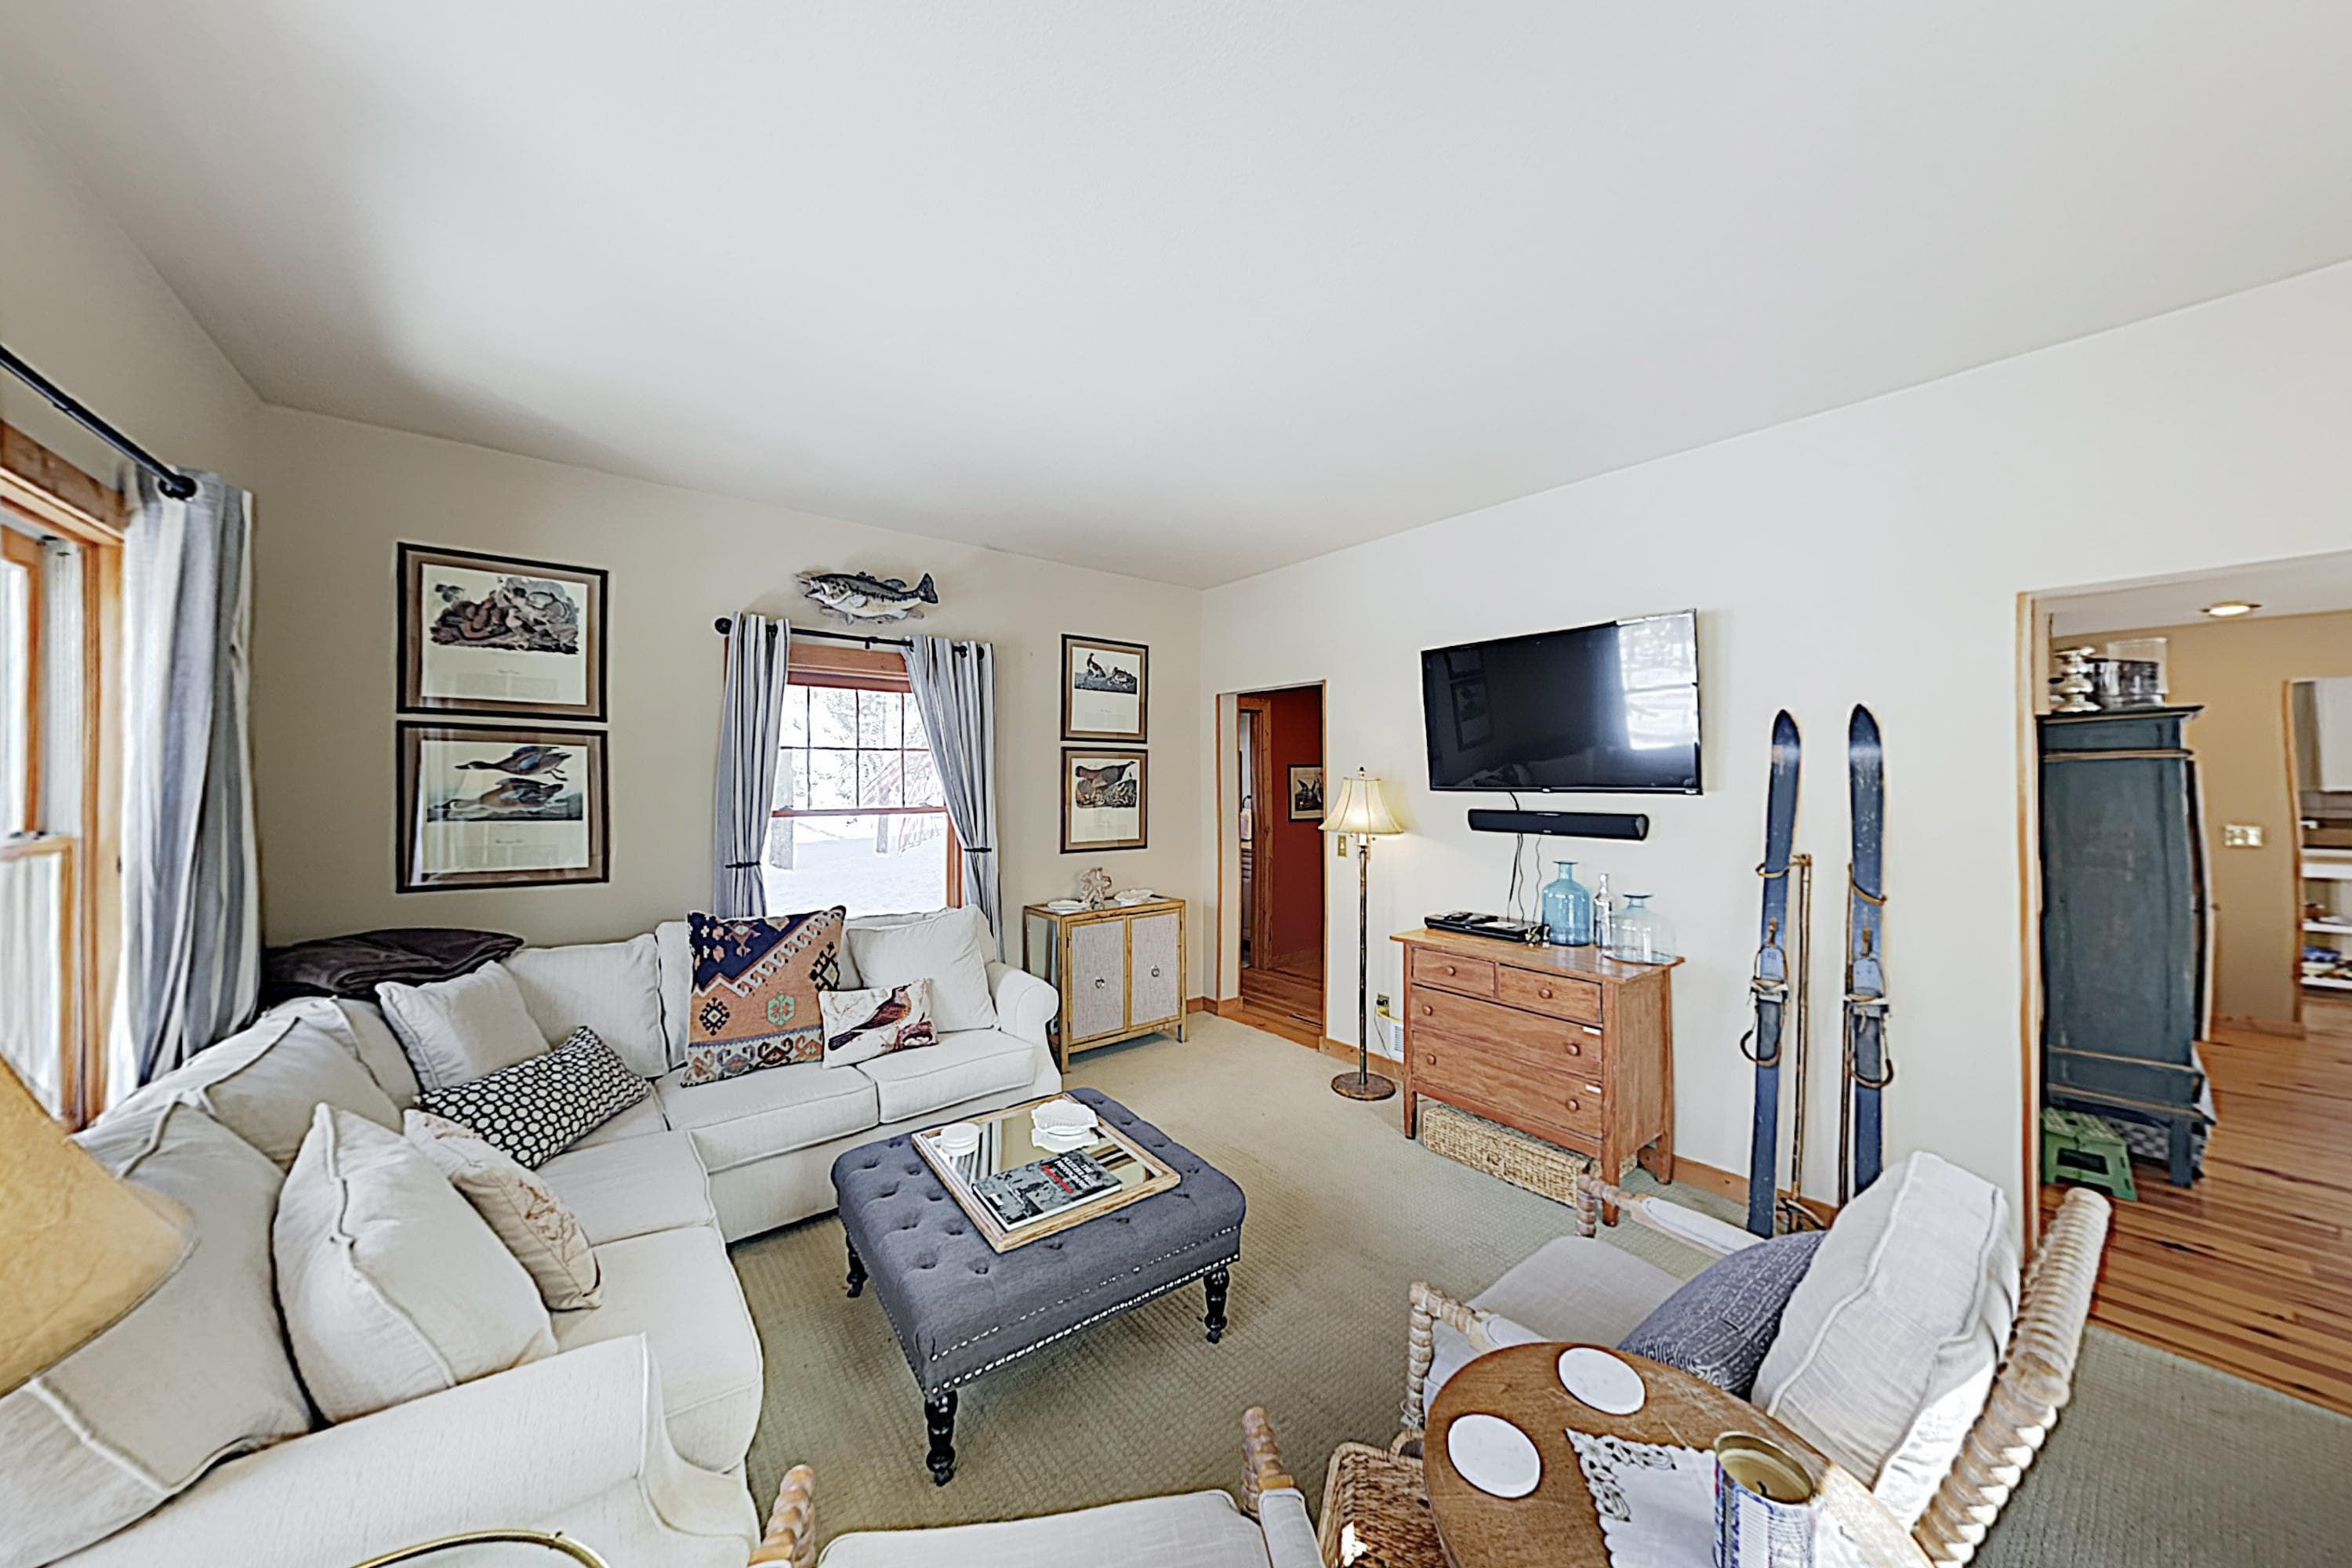 Relax in the stylish 2nd living area, furnished with a plush sectional and 2 chairs.